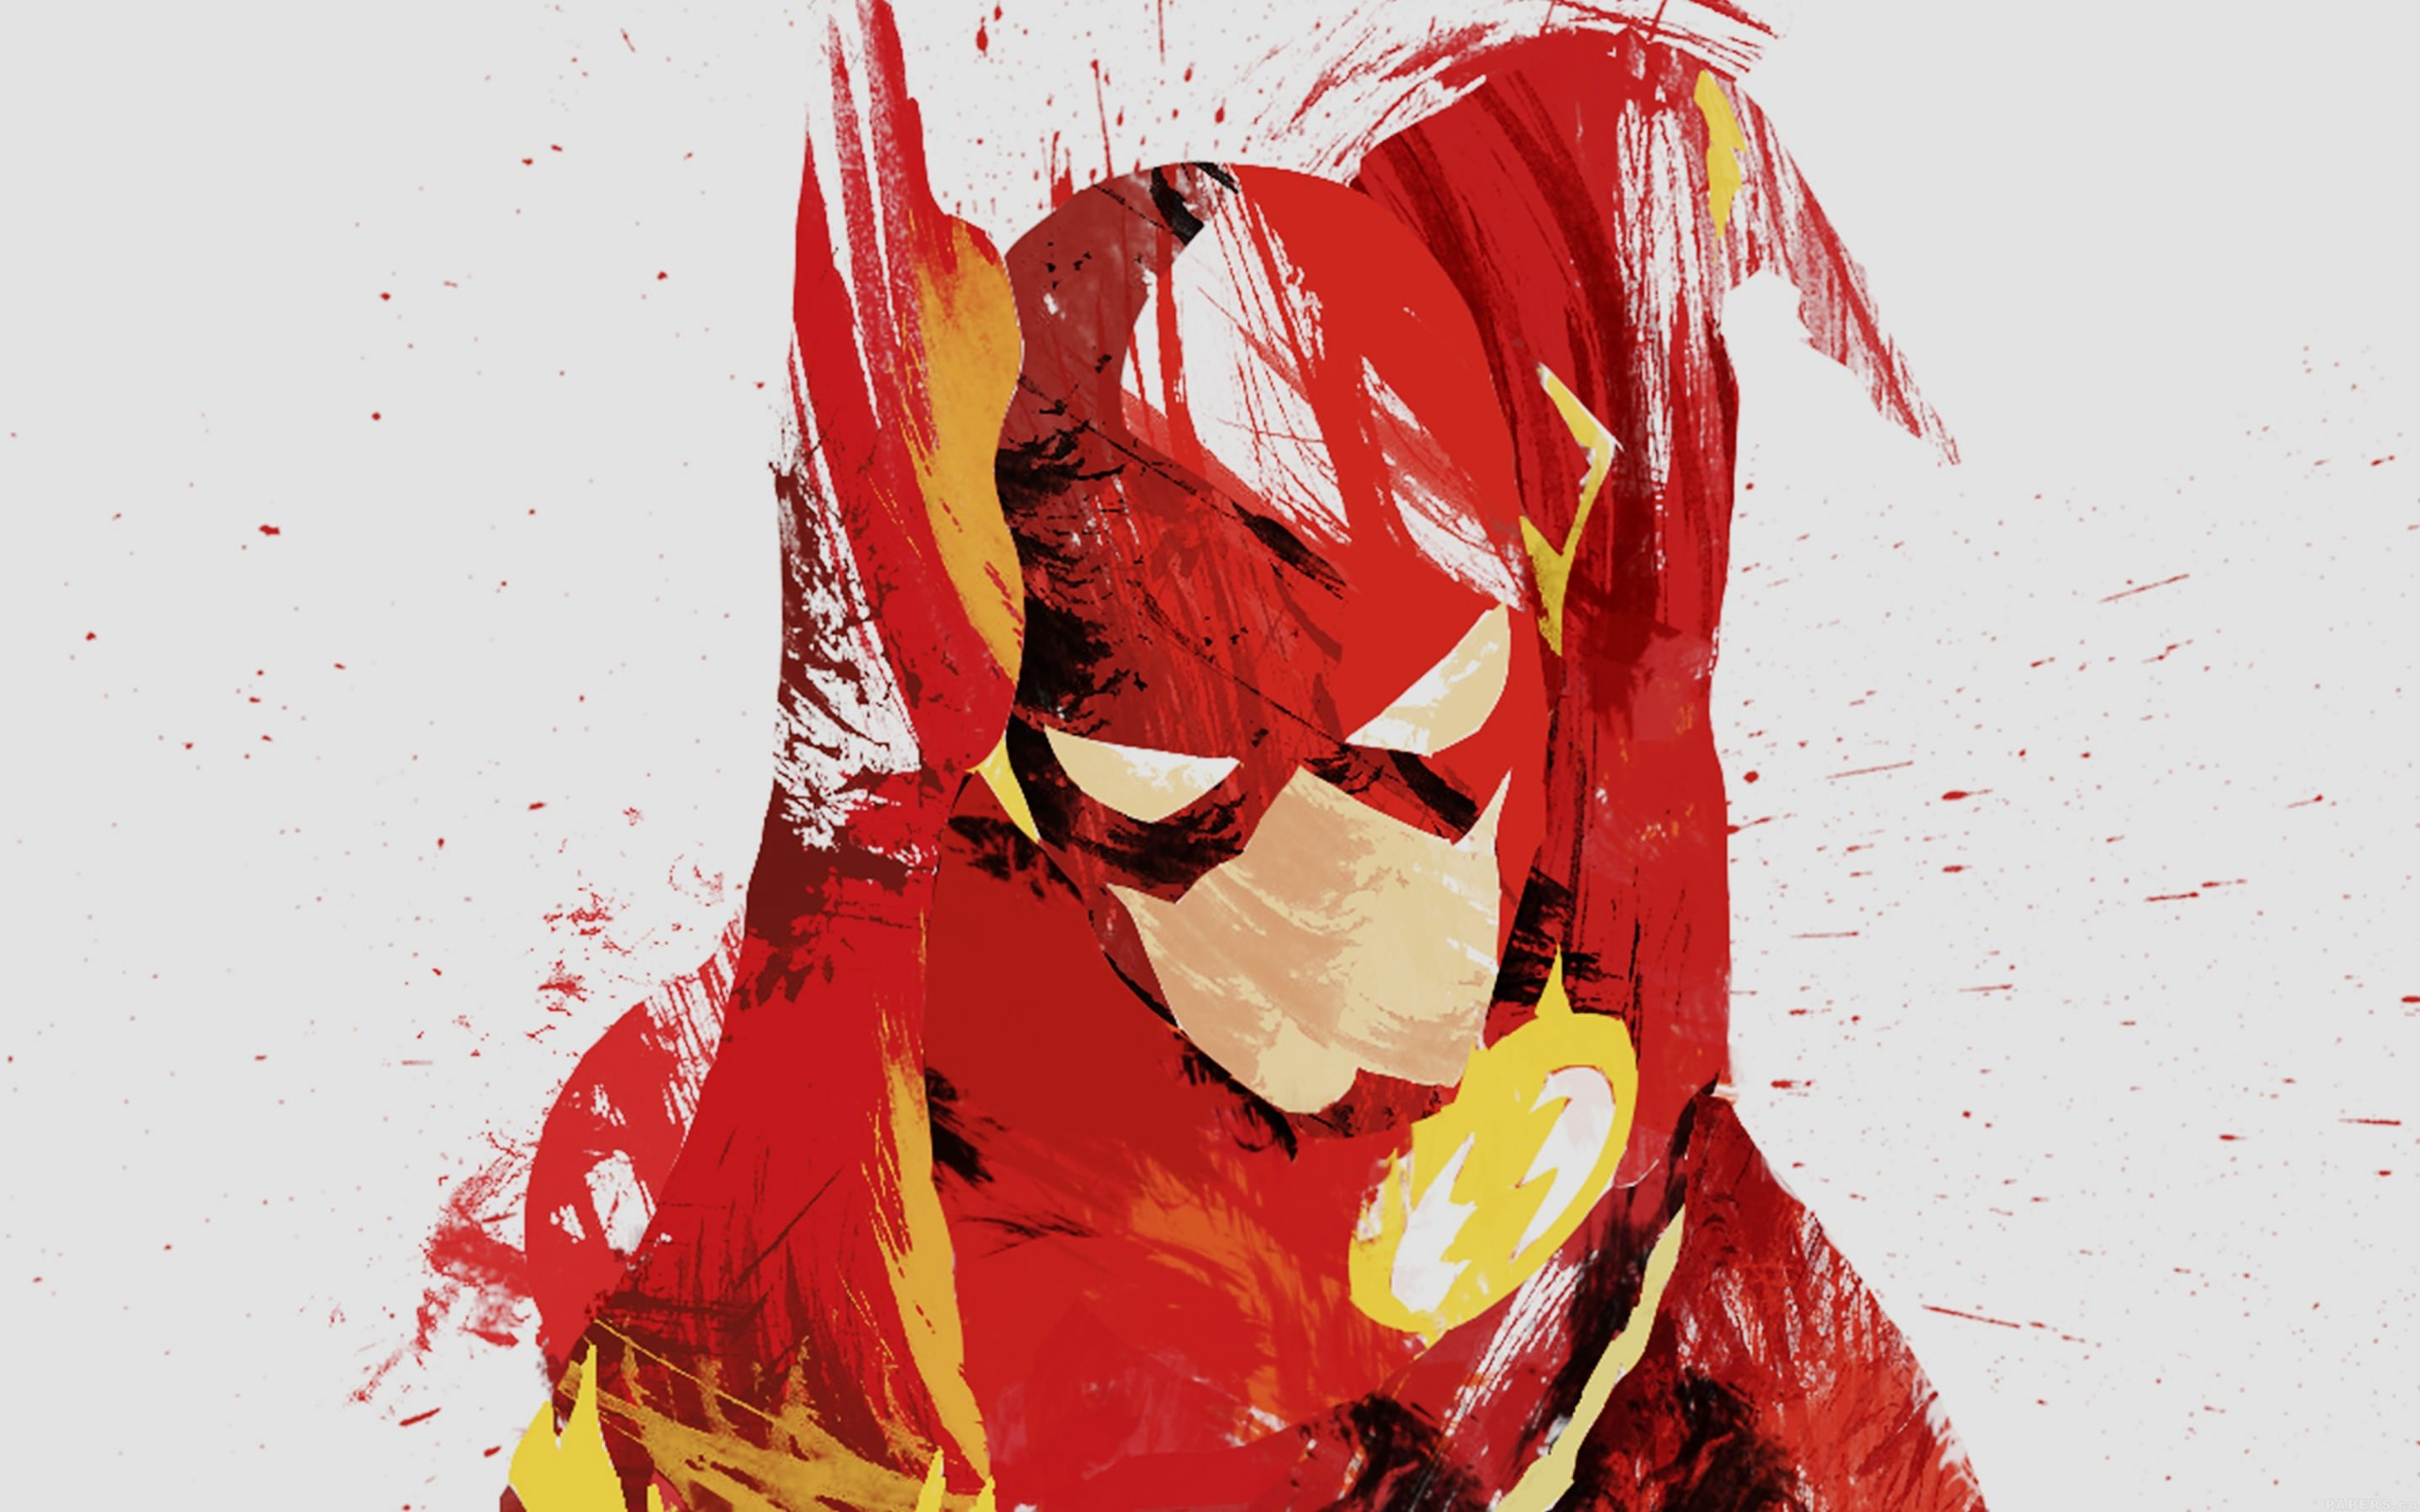 The Flash Illustration Wallpaper for Desktop 2560x1600